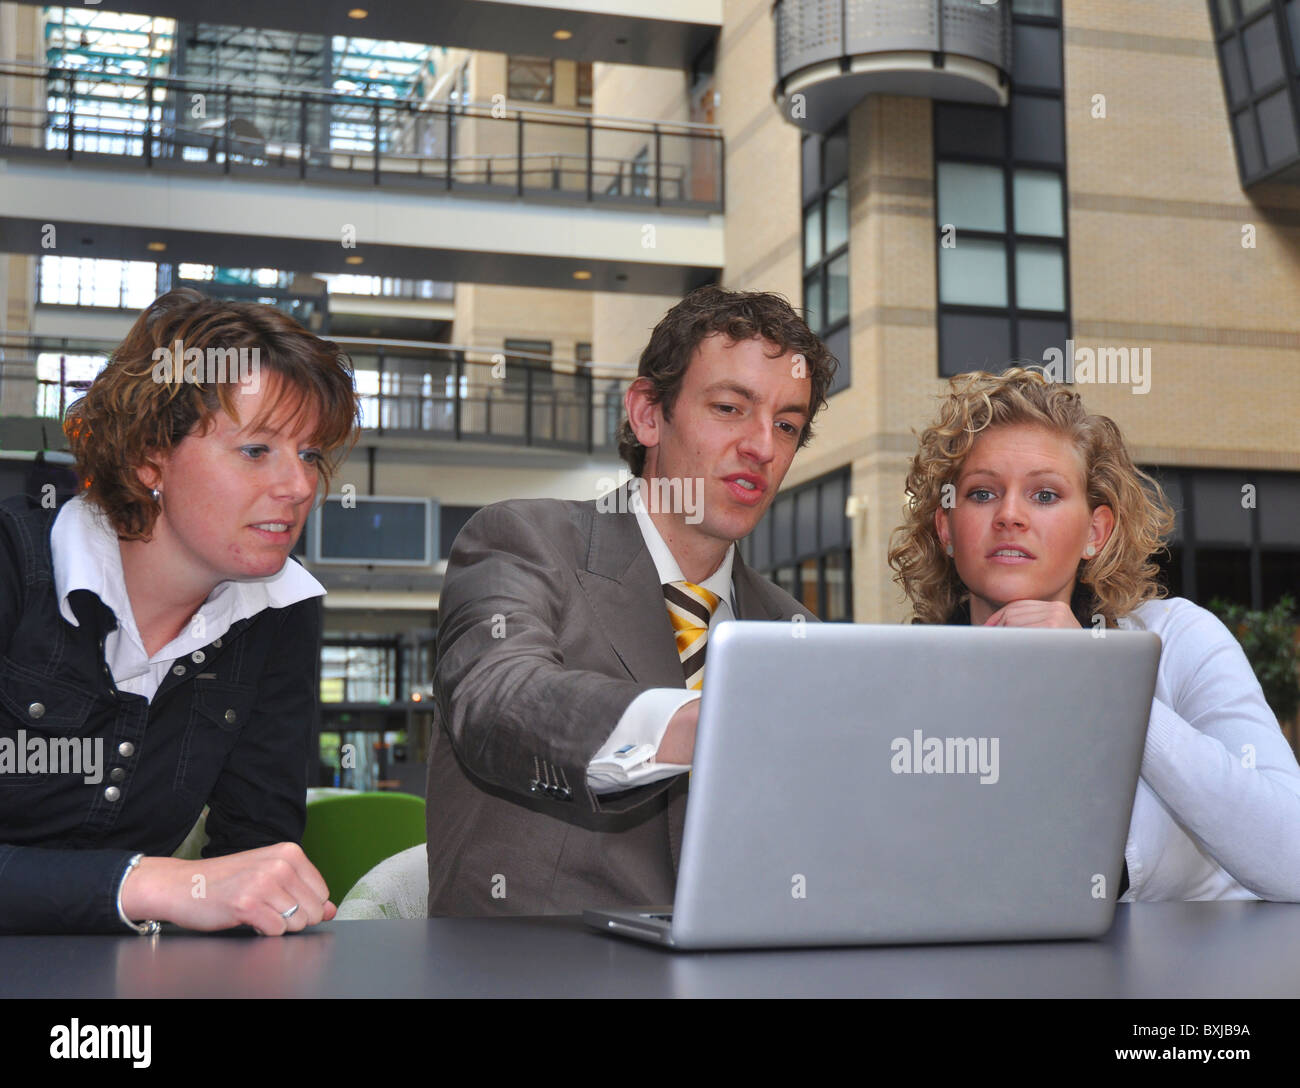 Business man and woman preparing for a job interview - Stock Image